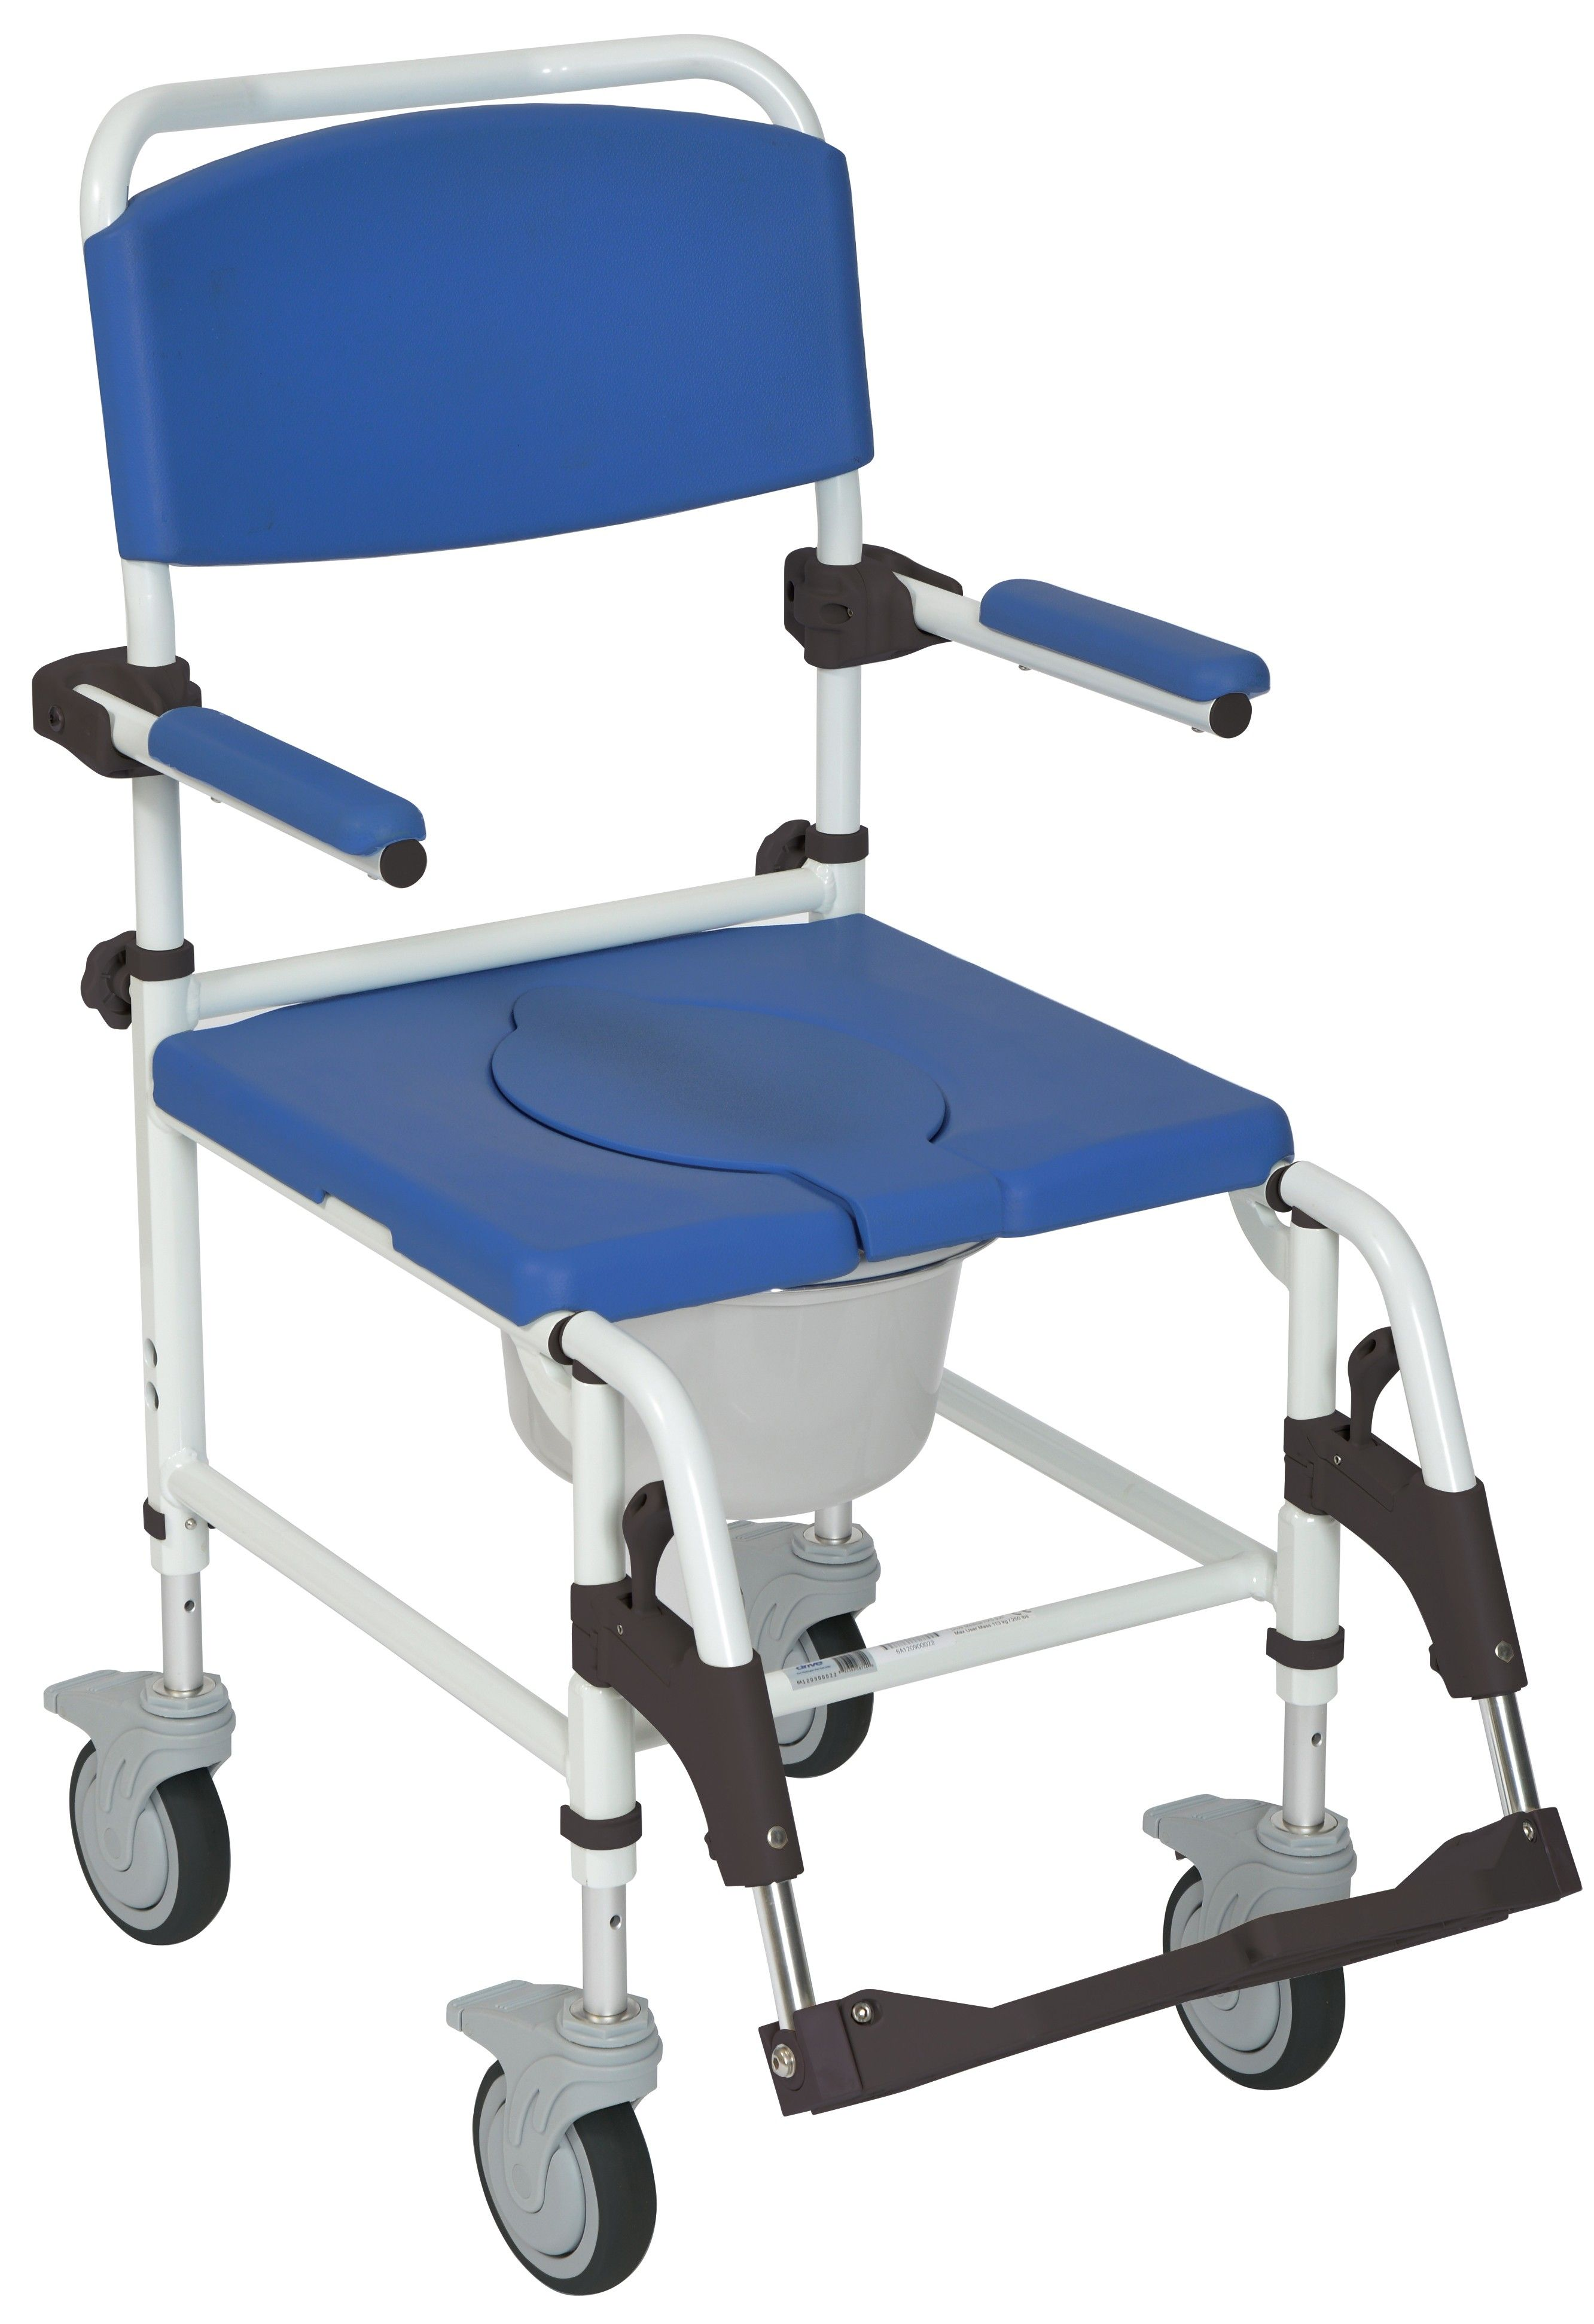 Medical Commode Toilet Seat Shower Wheelchair with Locking